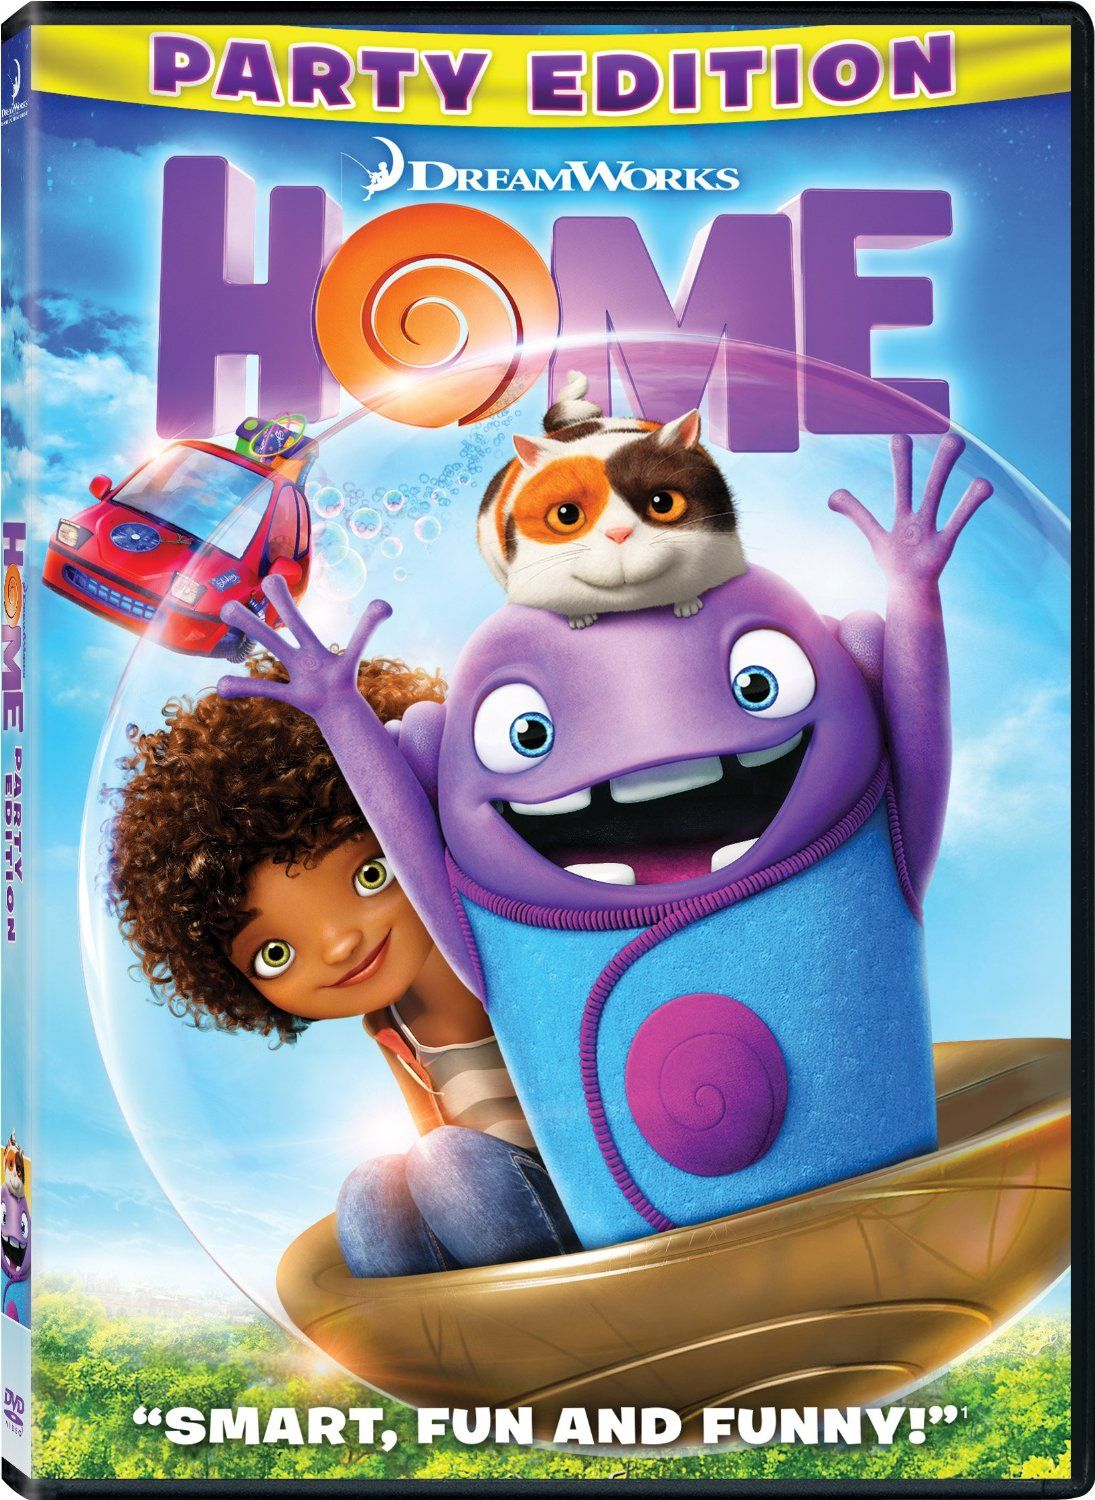 Home DVD Only 7! (reg. 19.98) Dreamworks home, Home